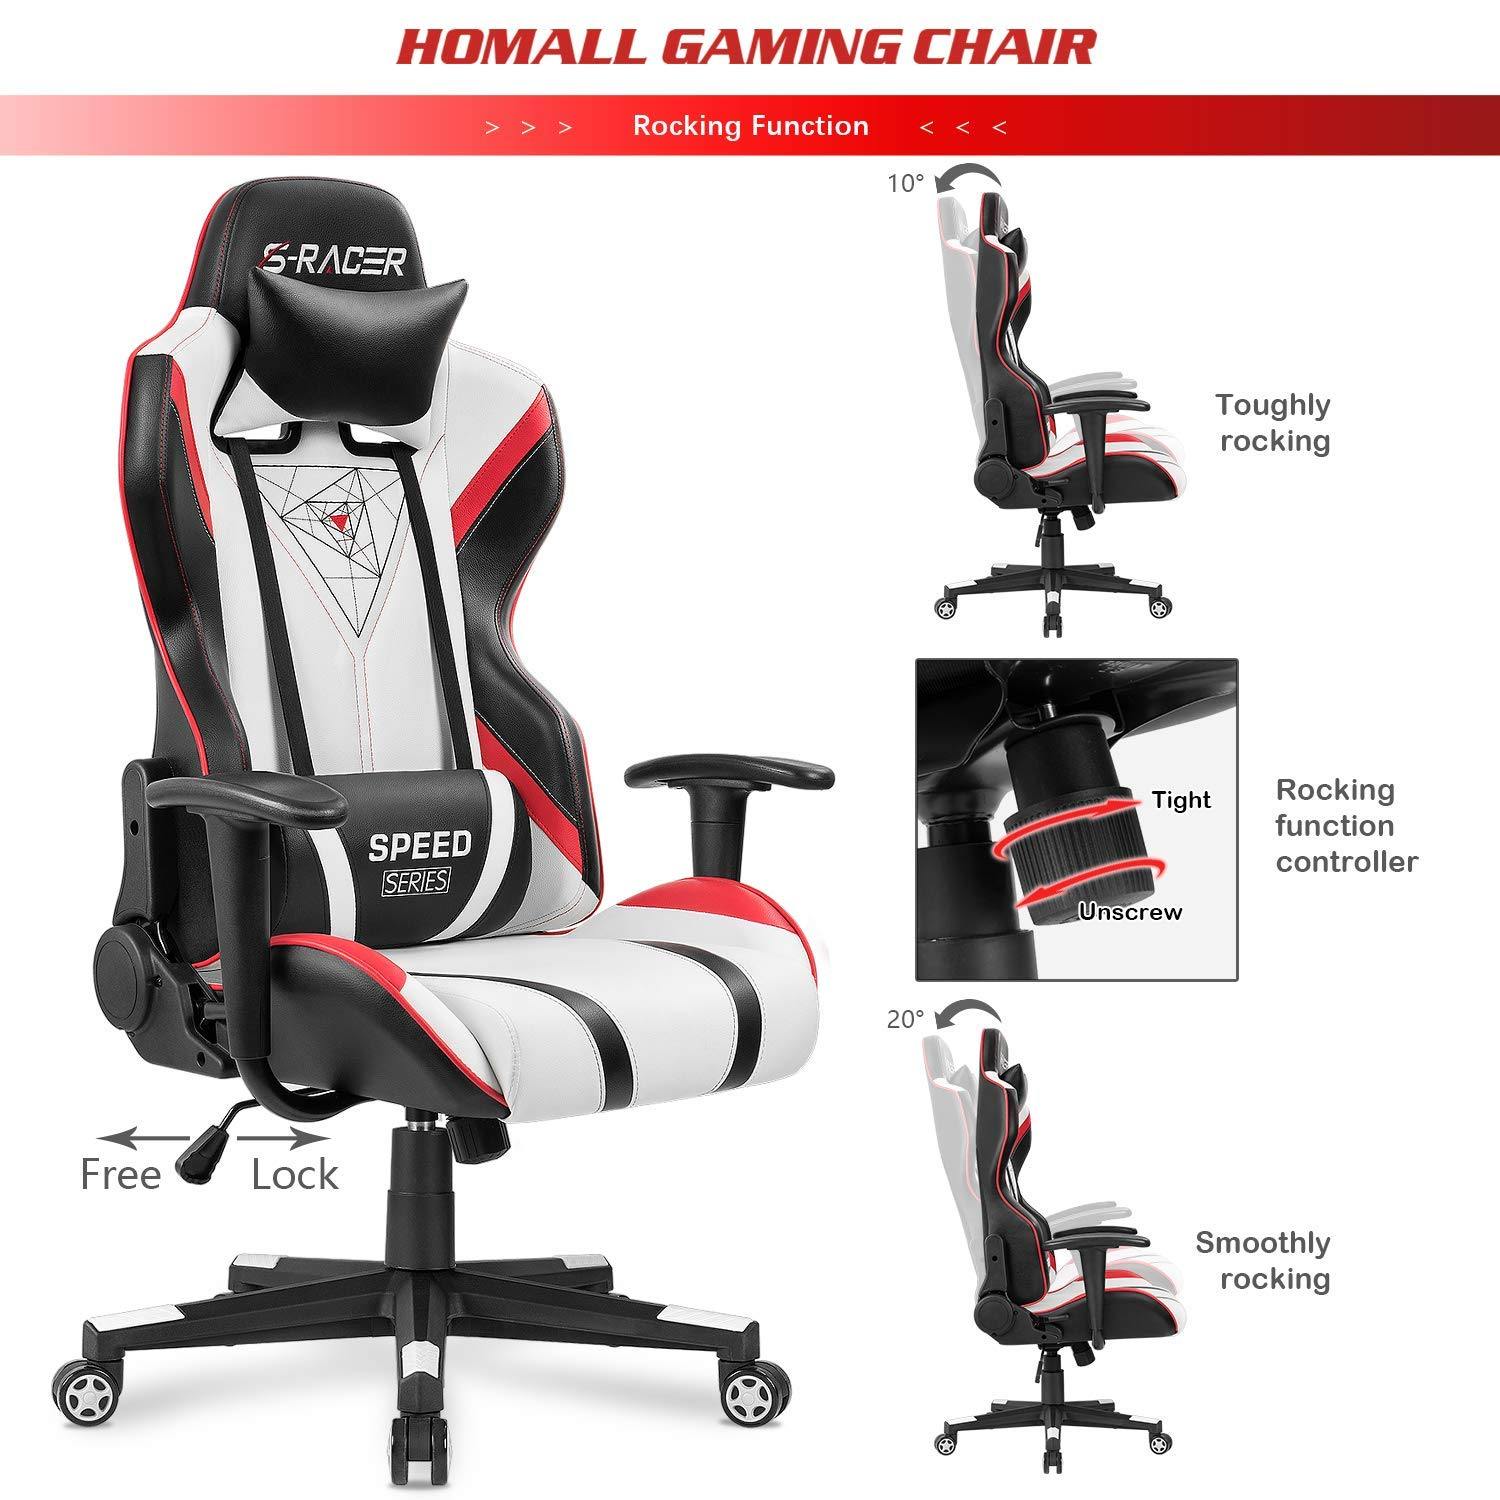 Homall Gaming Racing Office High Back PU Leather Computer Desk Executive and Ergonomic Swivel Chair with Headrest White